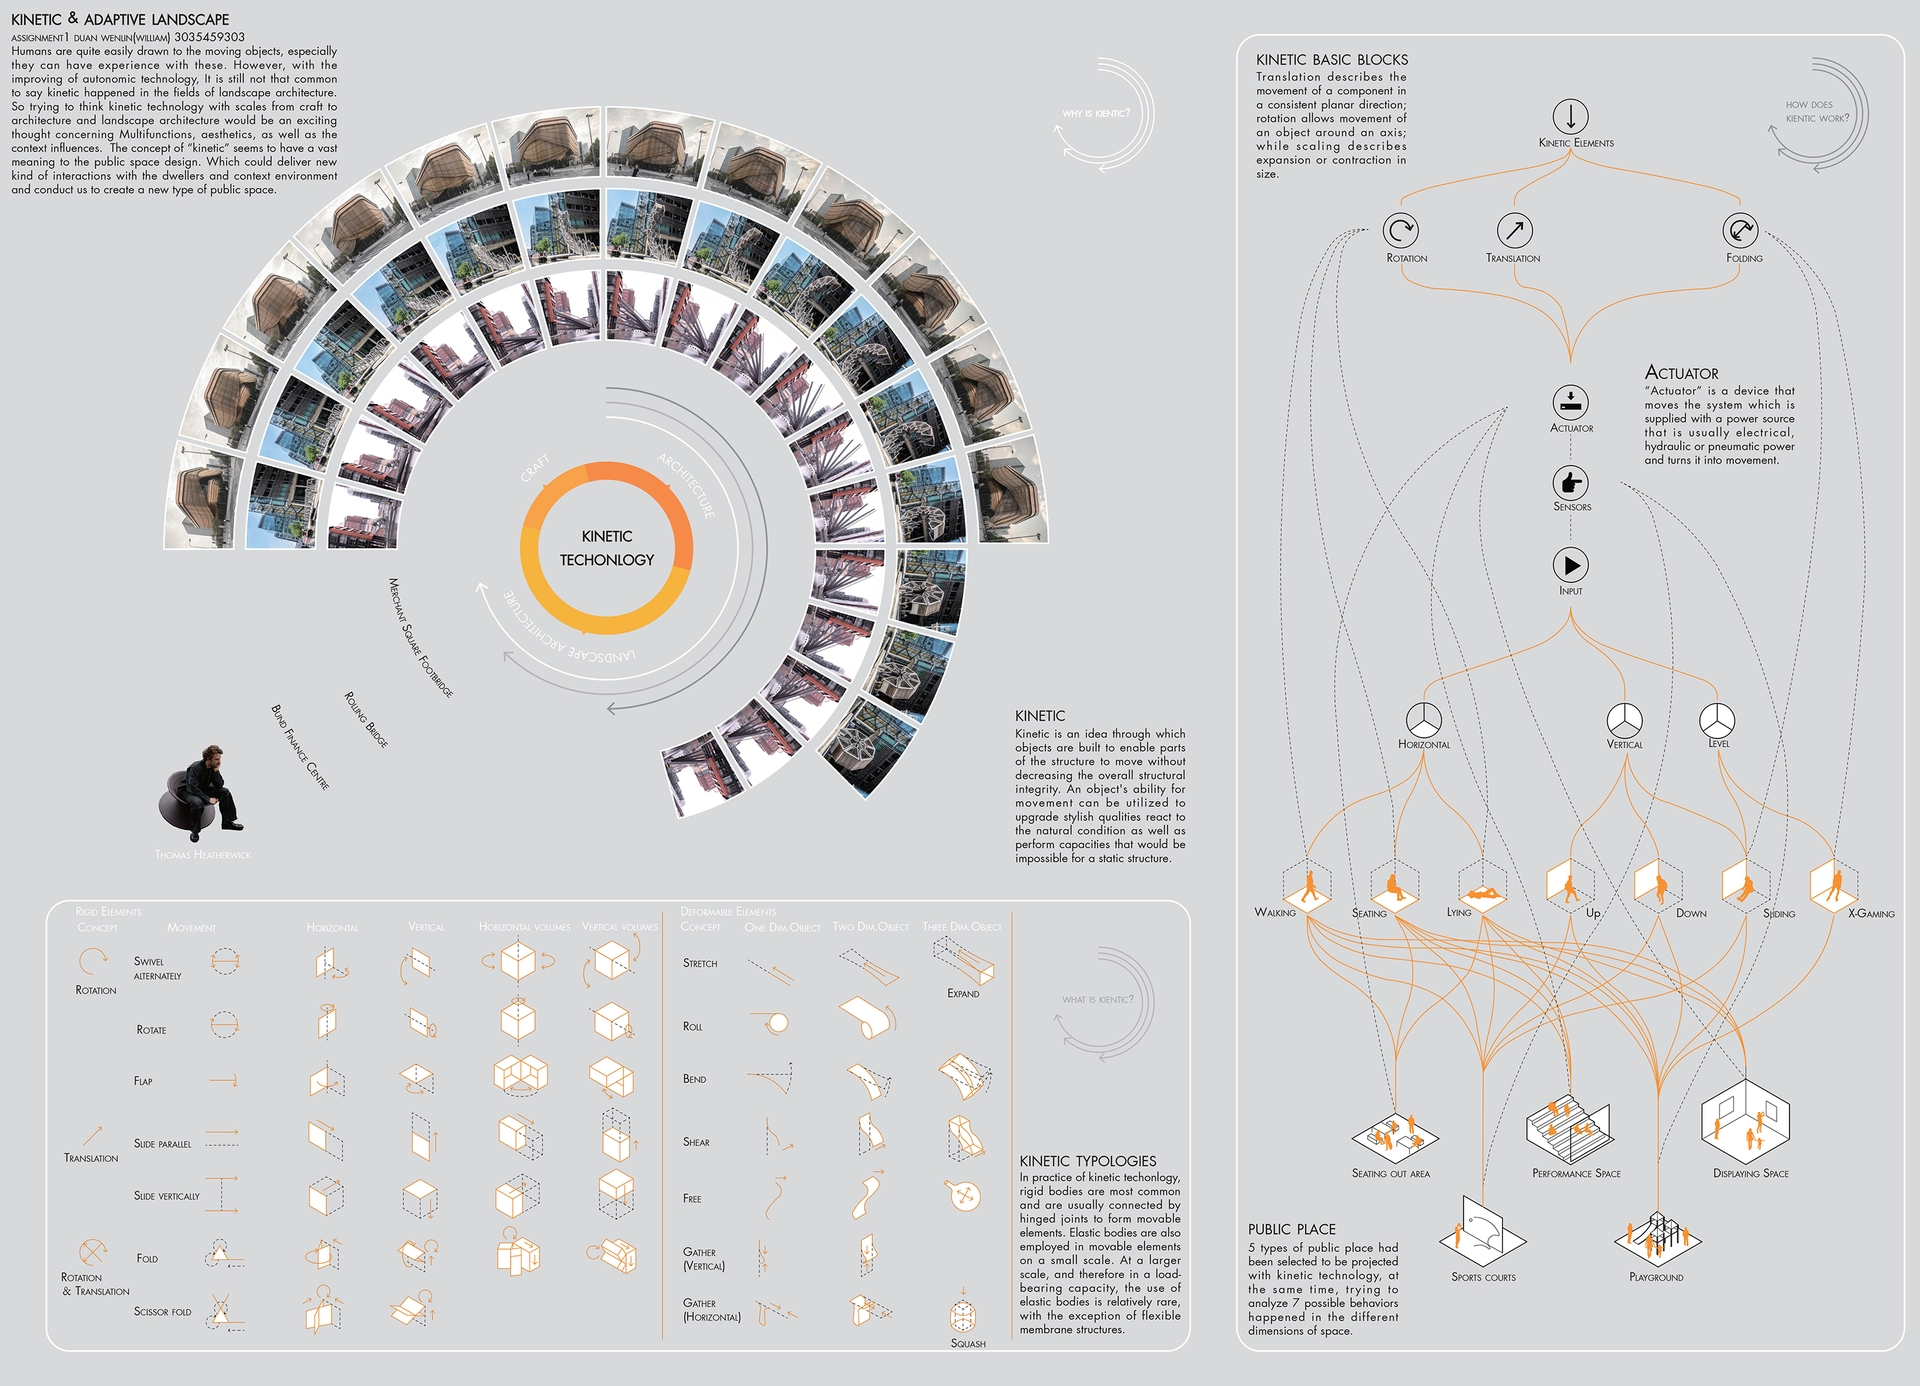 Enlarge Photo: Kinetic and Adaptive Landscape. By DUAN Wenlin.